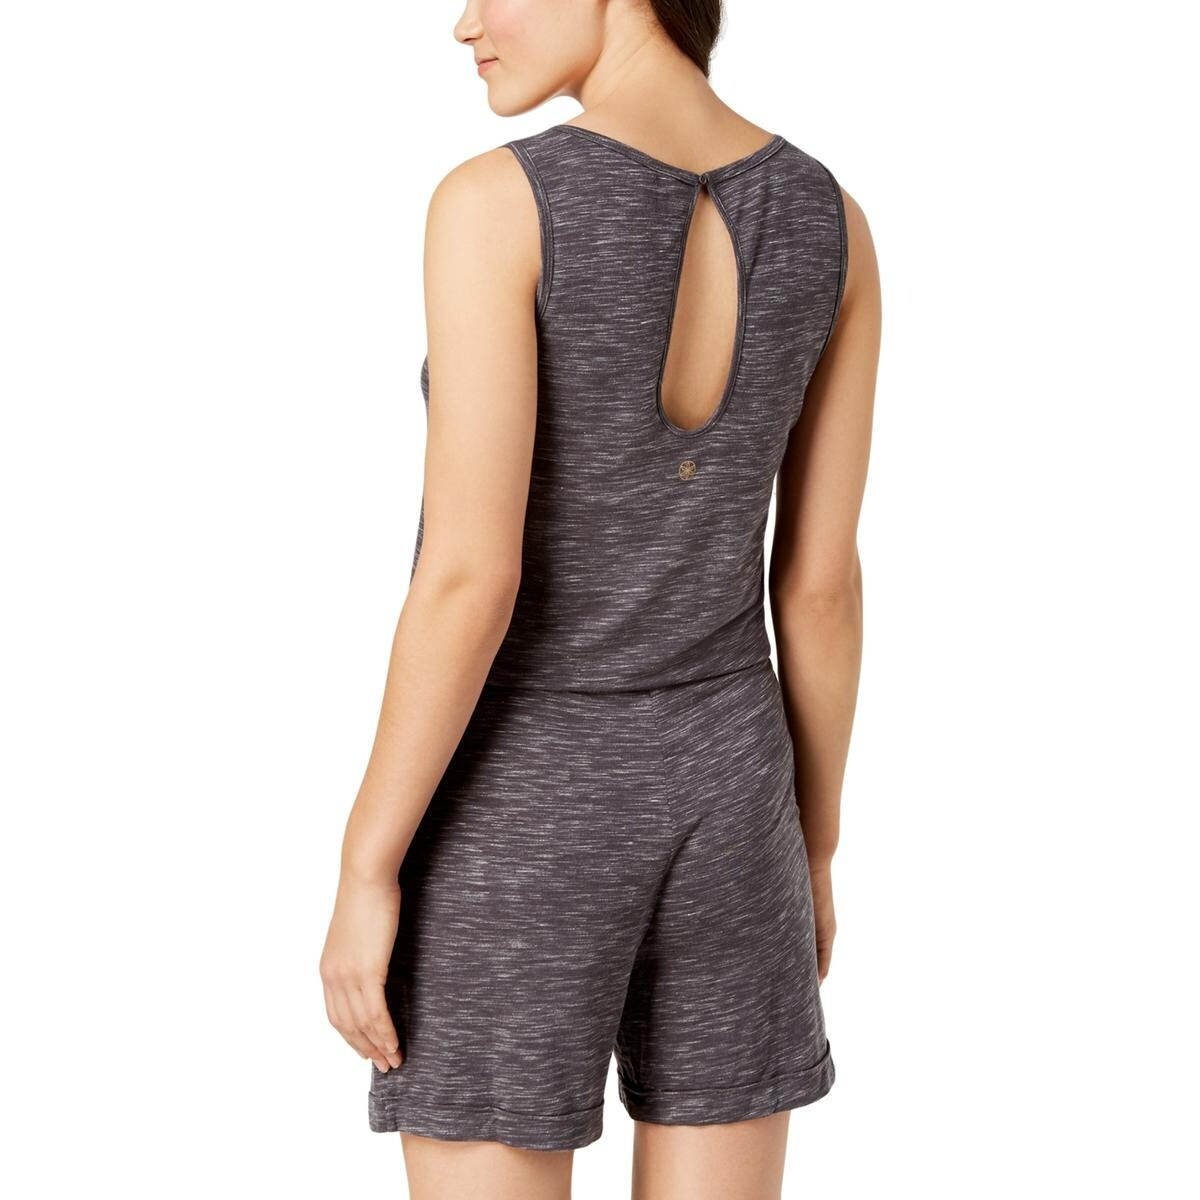 4bf35c6ad4 Shop Gaiam Womens Gemma Romper Yoga Fitness - Free Shipping On Orders Over  $45 - Overstock - 26280685